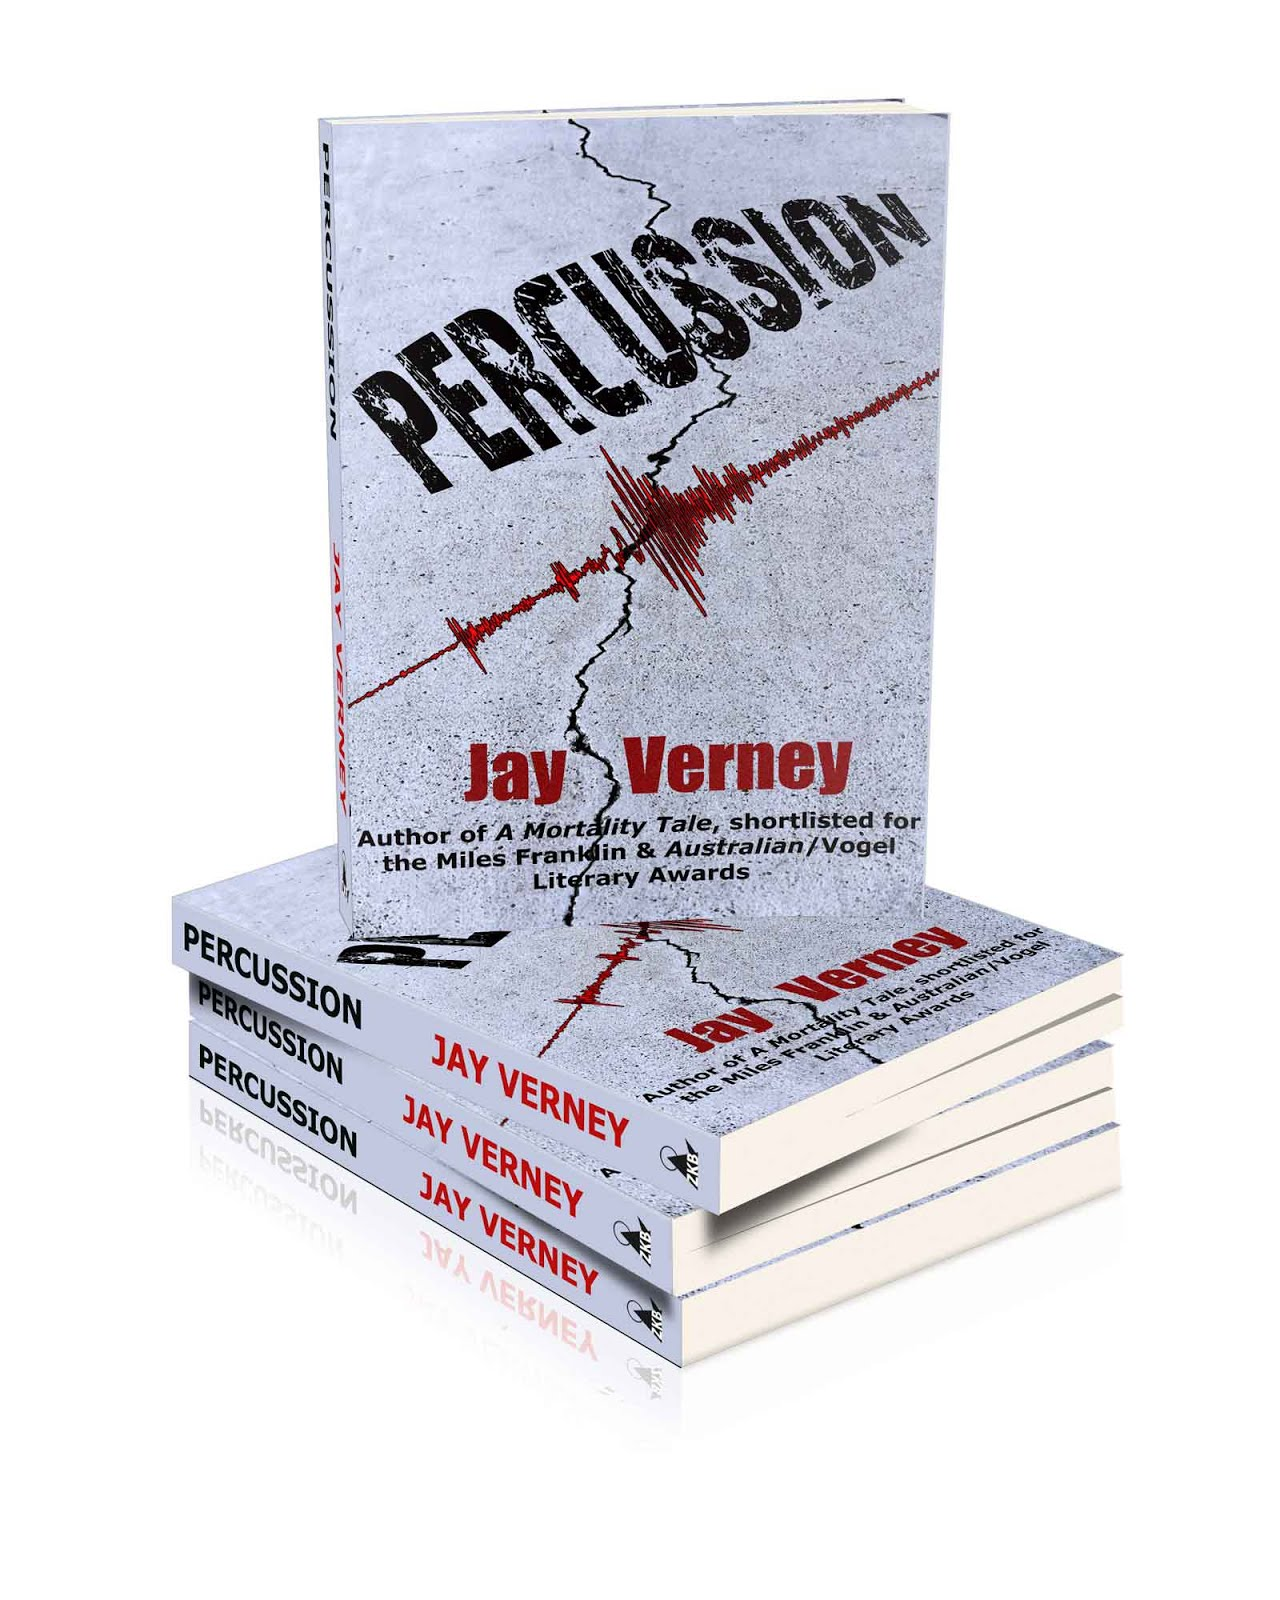 Percussion - My 2nd novel